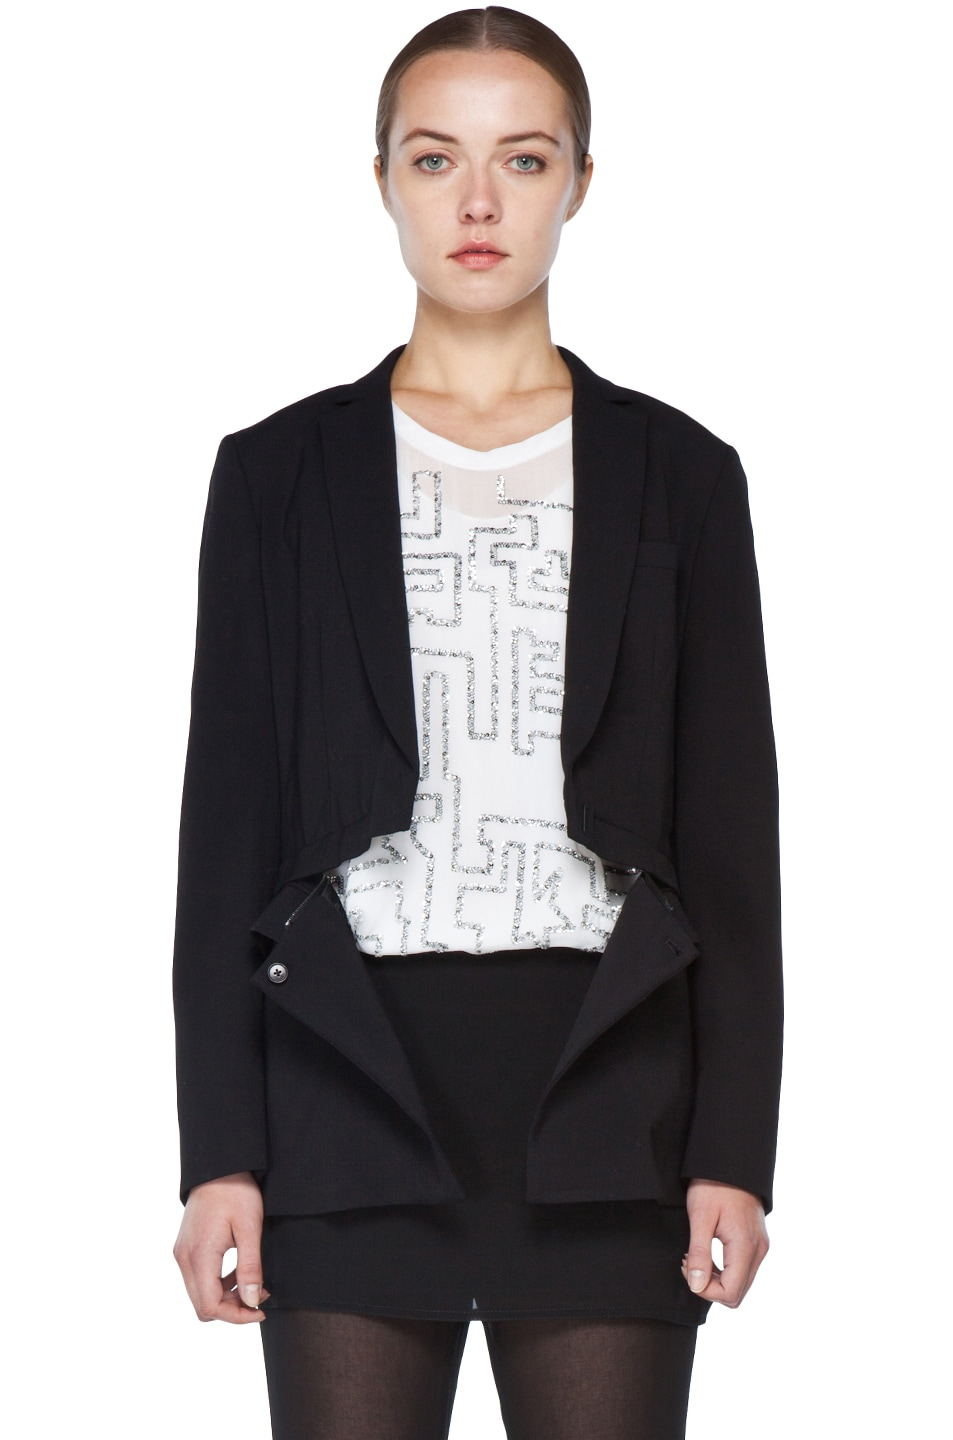 Image 3 of 3.1 phillip lim Blazer with Detachable Lower Panel in Black